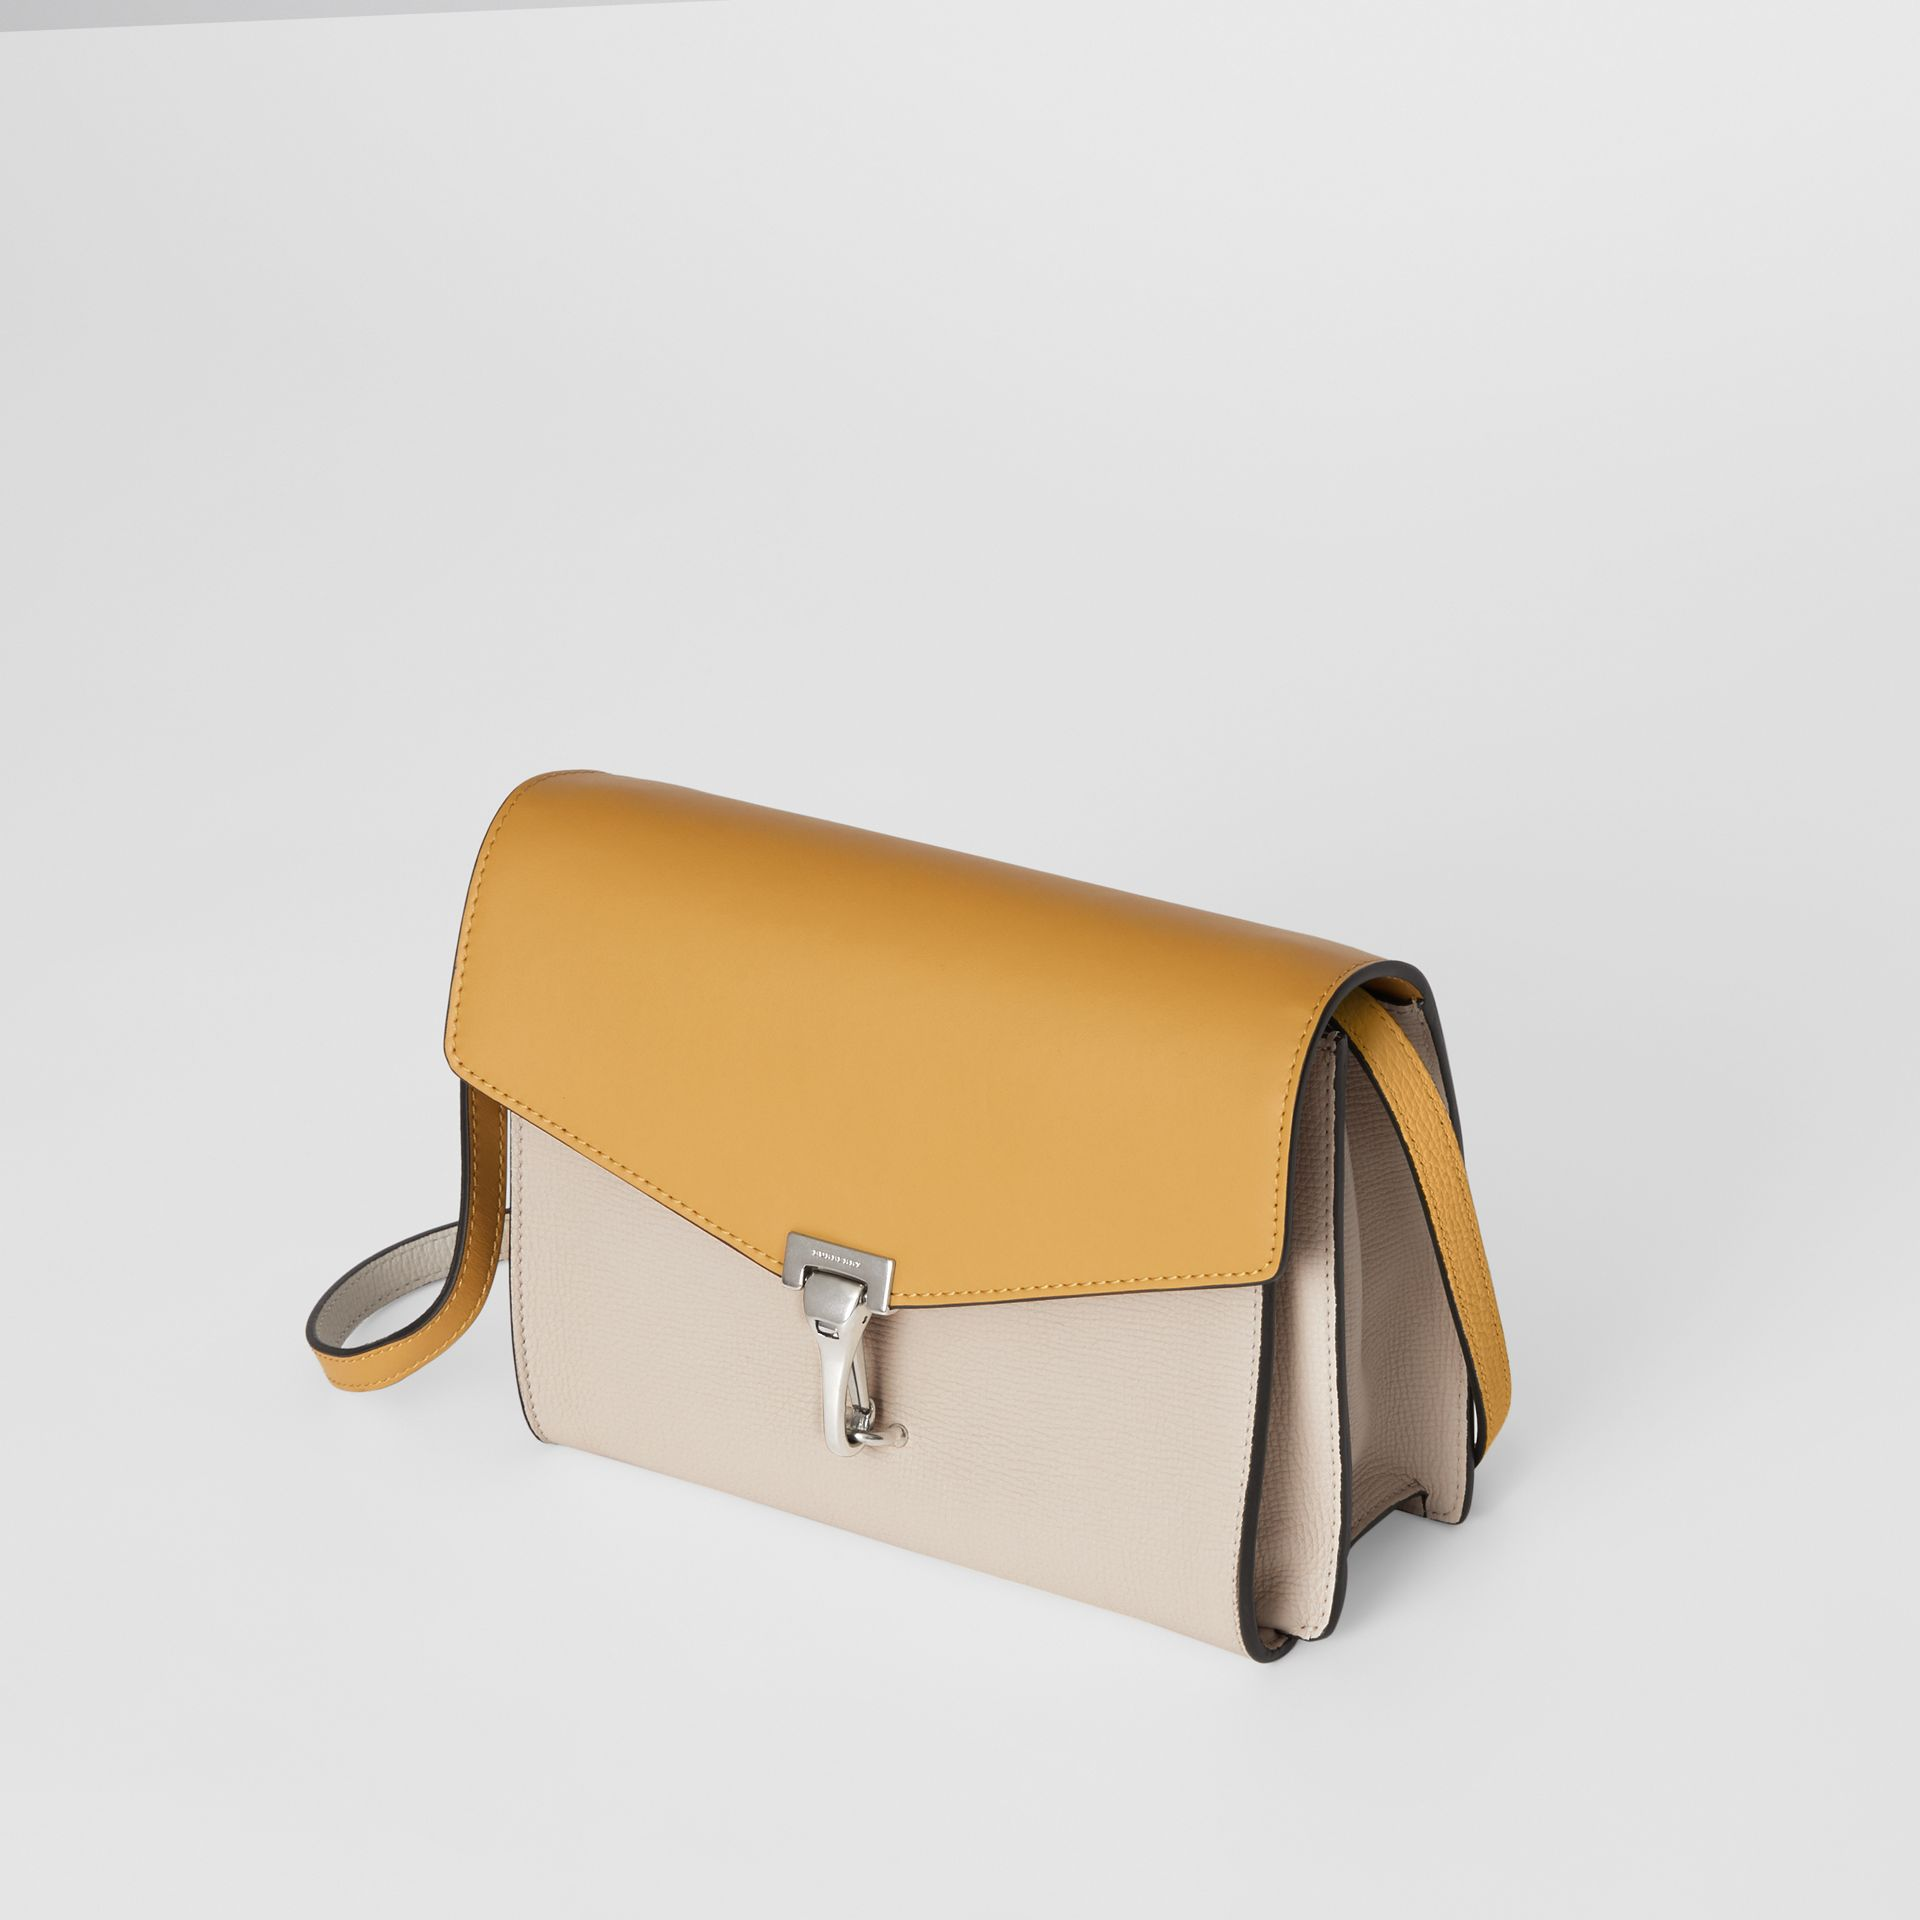 Two-tone Leather Crossbody Bag in Limestone/cornflower Yellow - Women | Burberry - gallery image 4